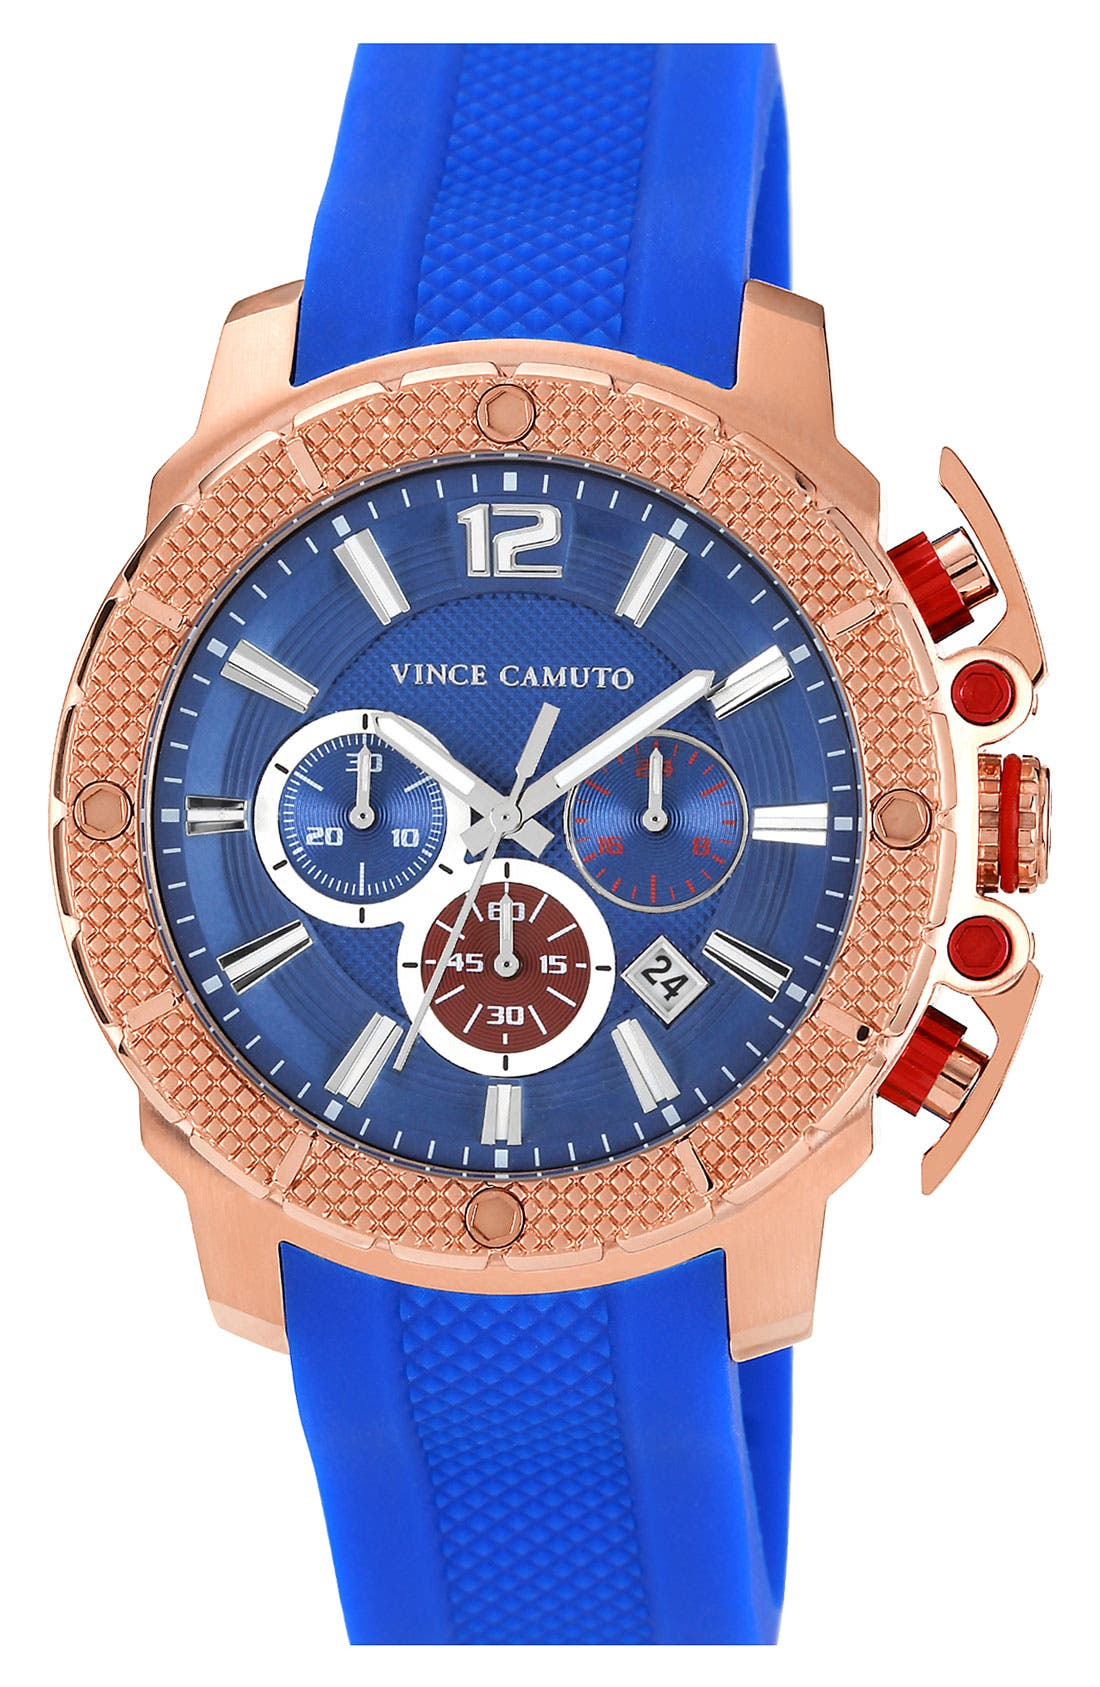 Main Image - Vince Camuto 'Striker' Chronograph Silicone Strap Watch, 45mm